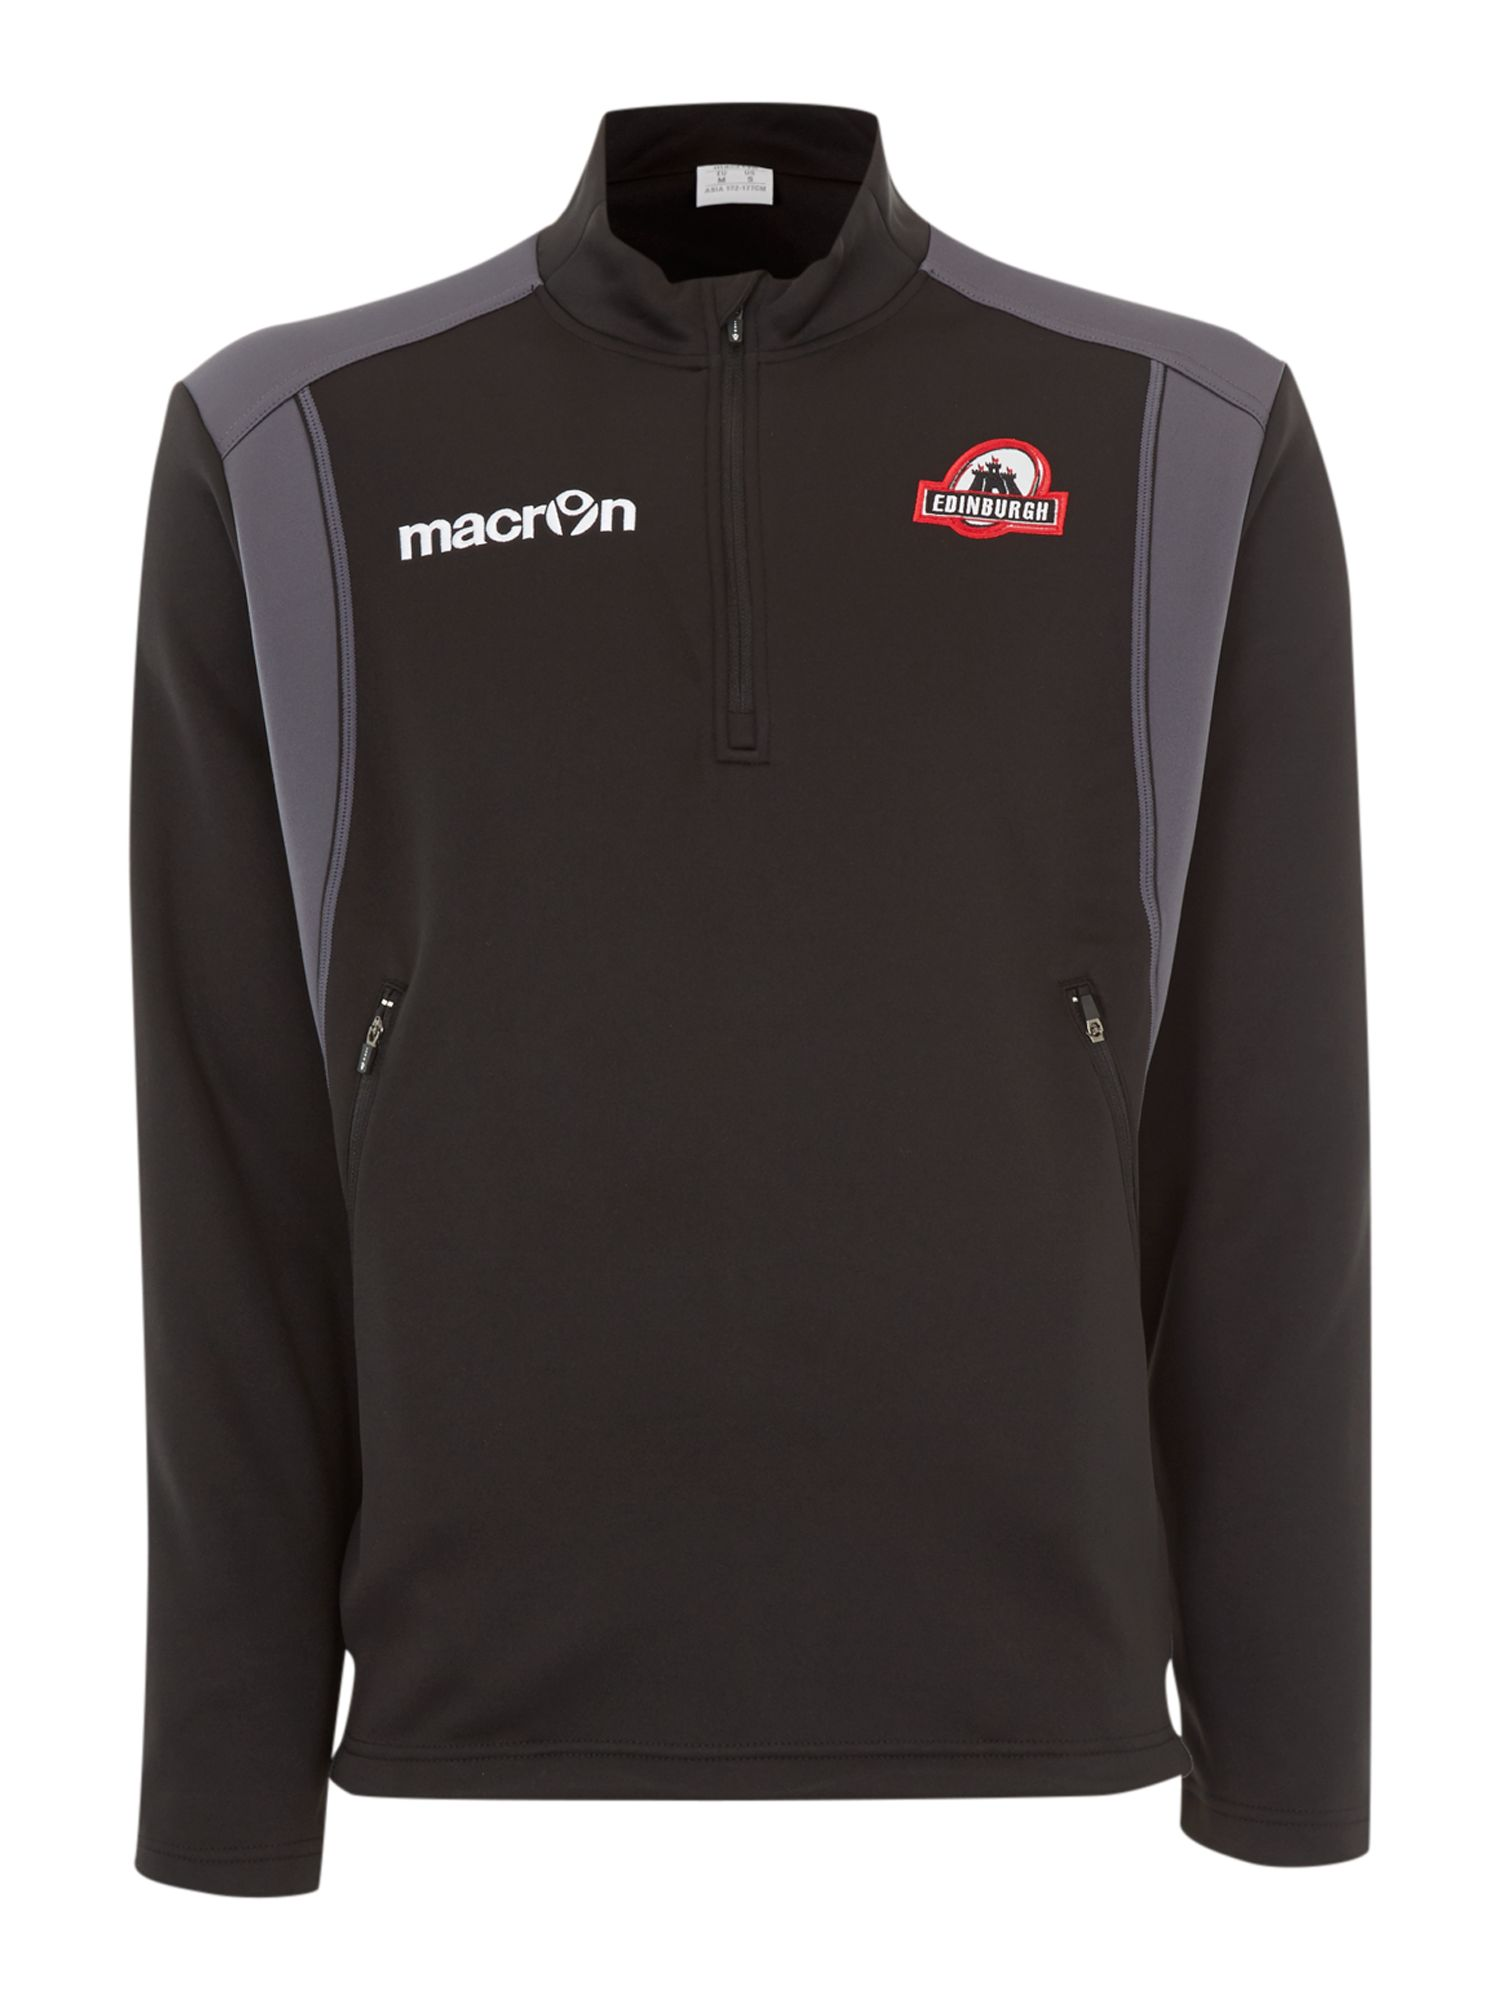 Edinburgh rugby travel microfleece